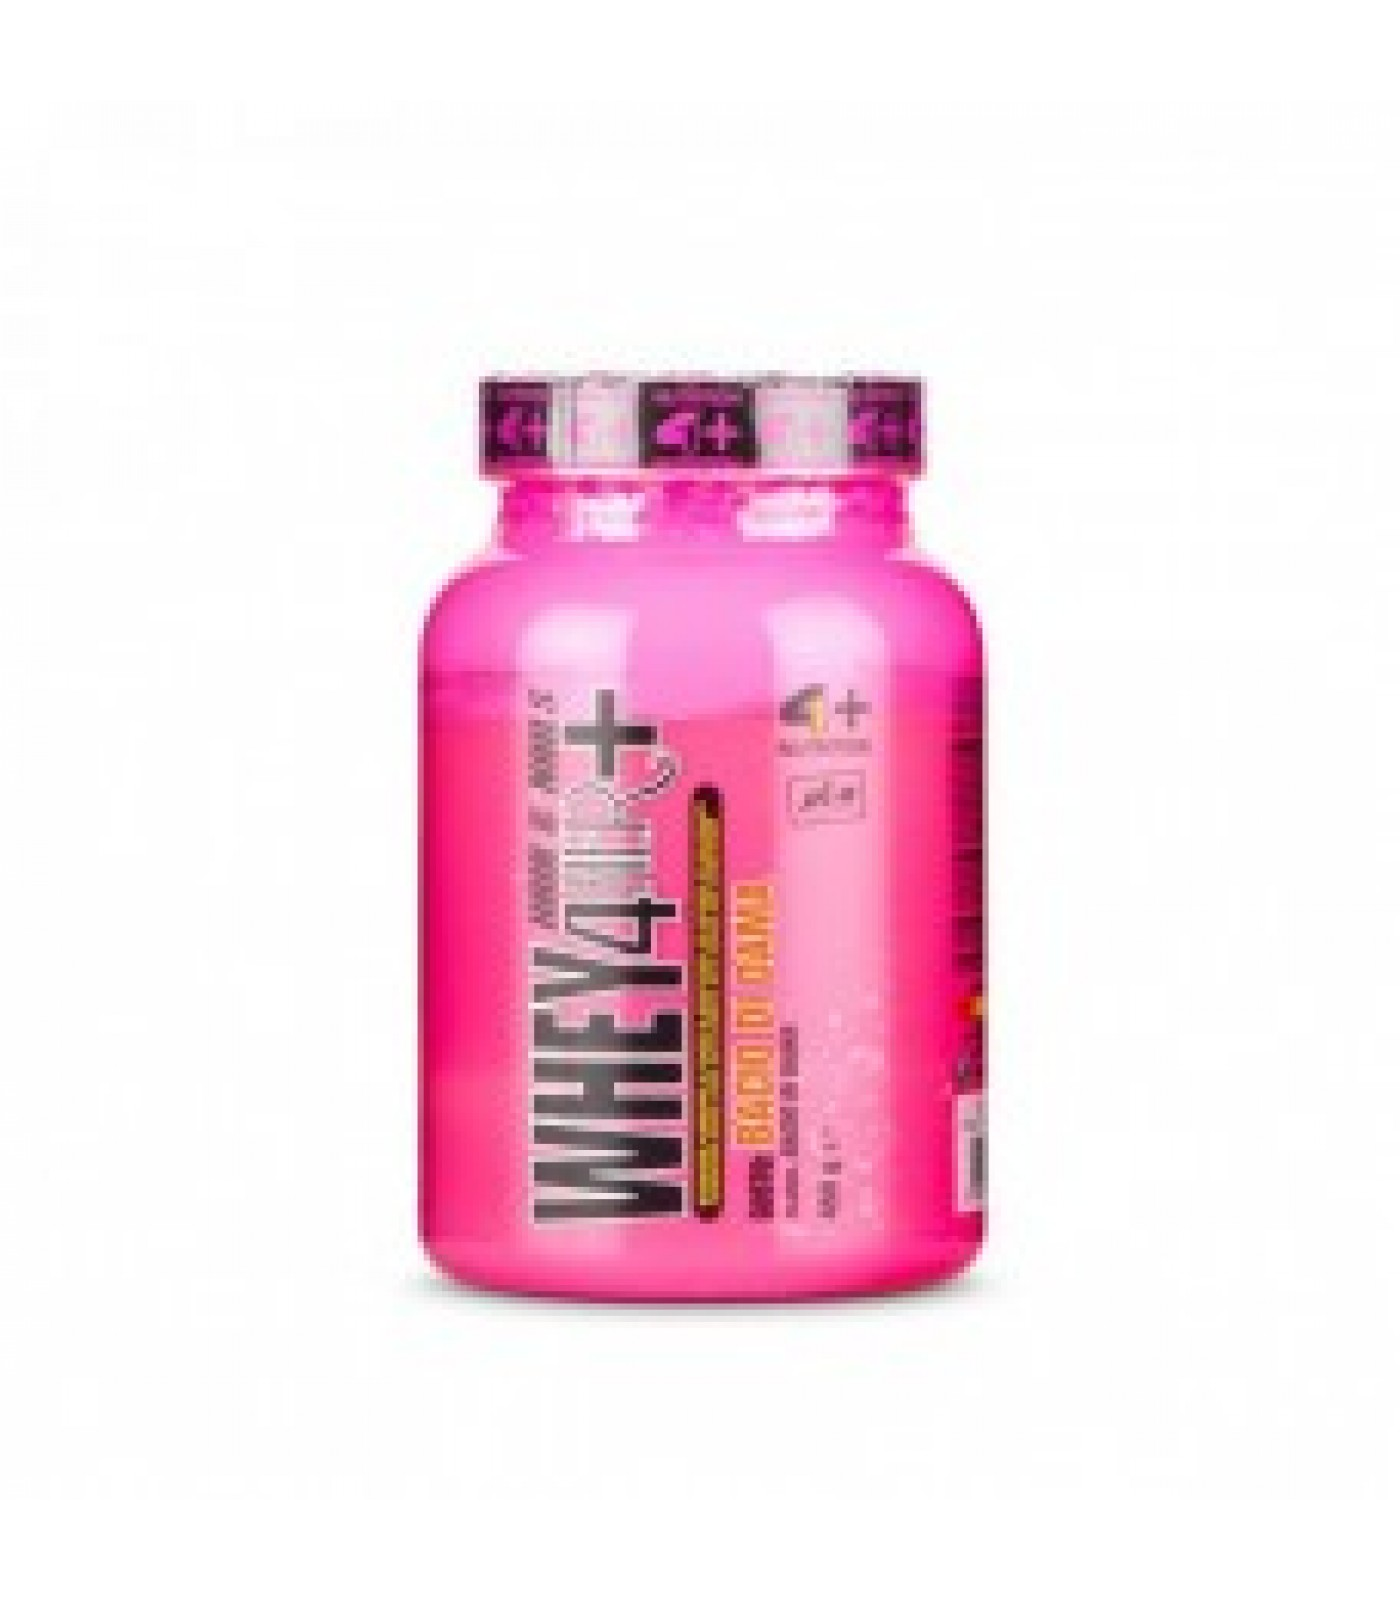 4+ Nutrition WHEY 4 HER+ HAIR&NAILS 450 гр.